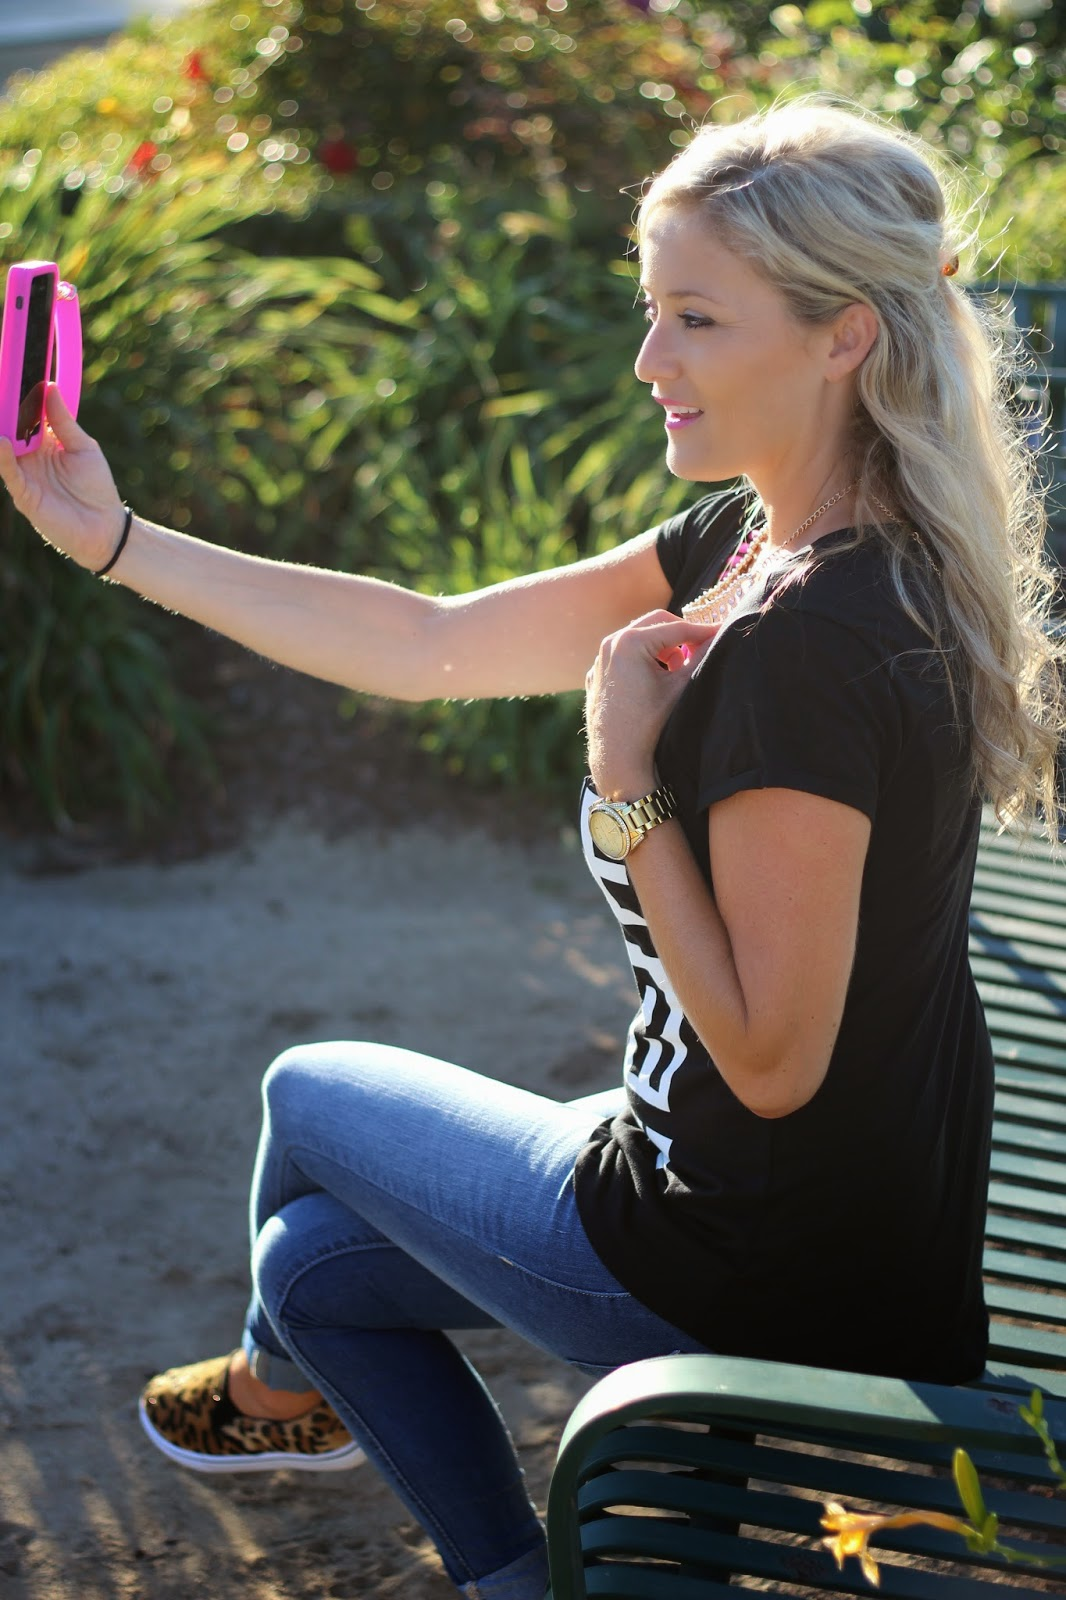 selfie, hashtag selfie, pretty in pynk, iphone case